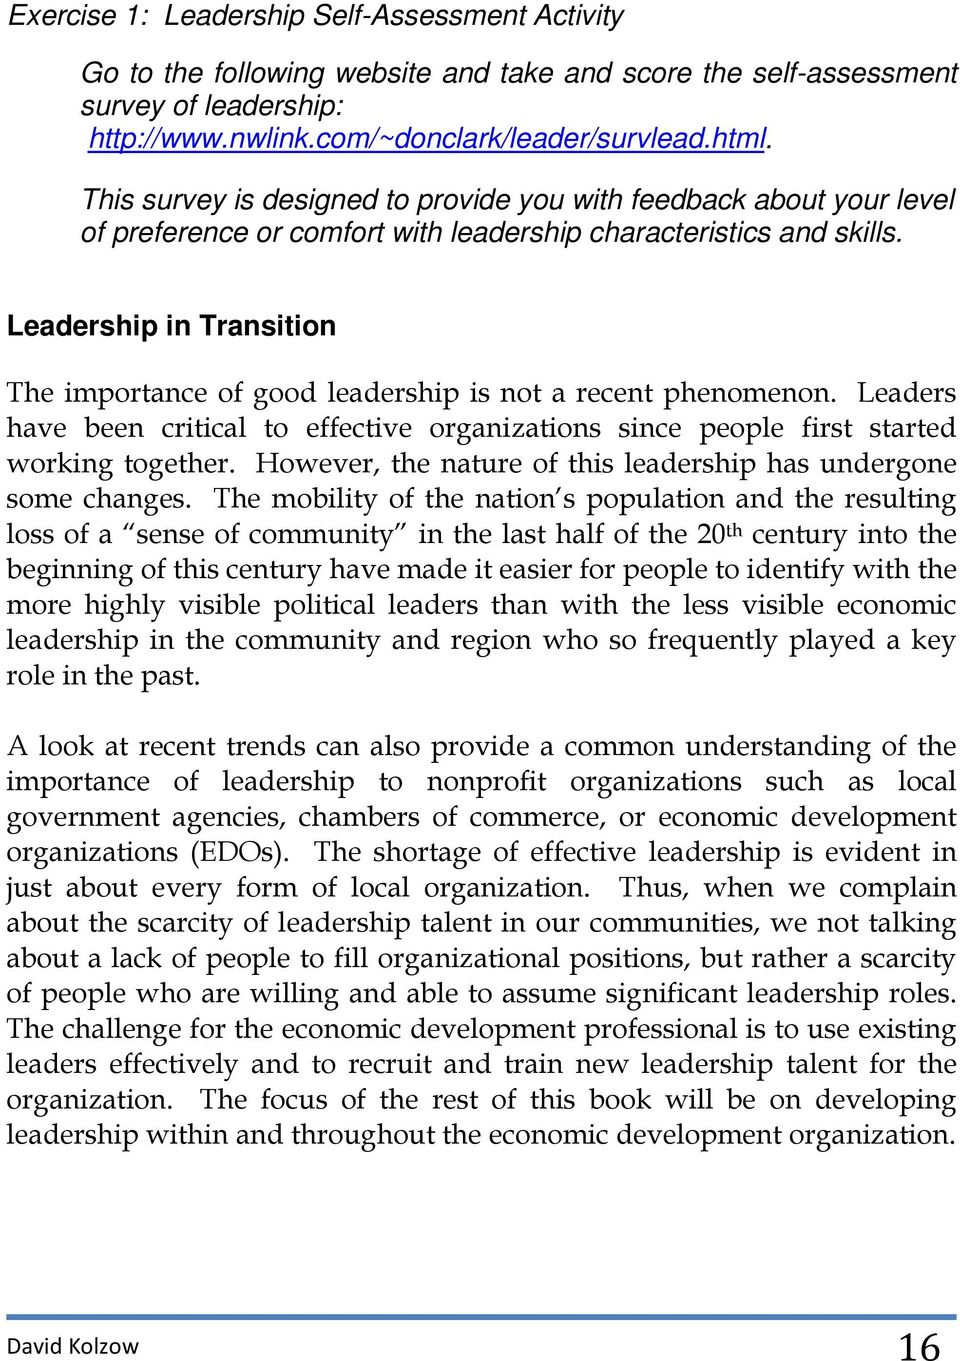 Leadership in Transition The importance of good leadership is not a recent phenomenon. Leaders have been critical to effective organizations since people first started working together.